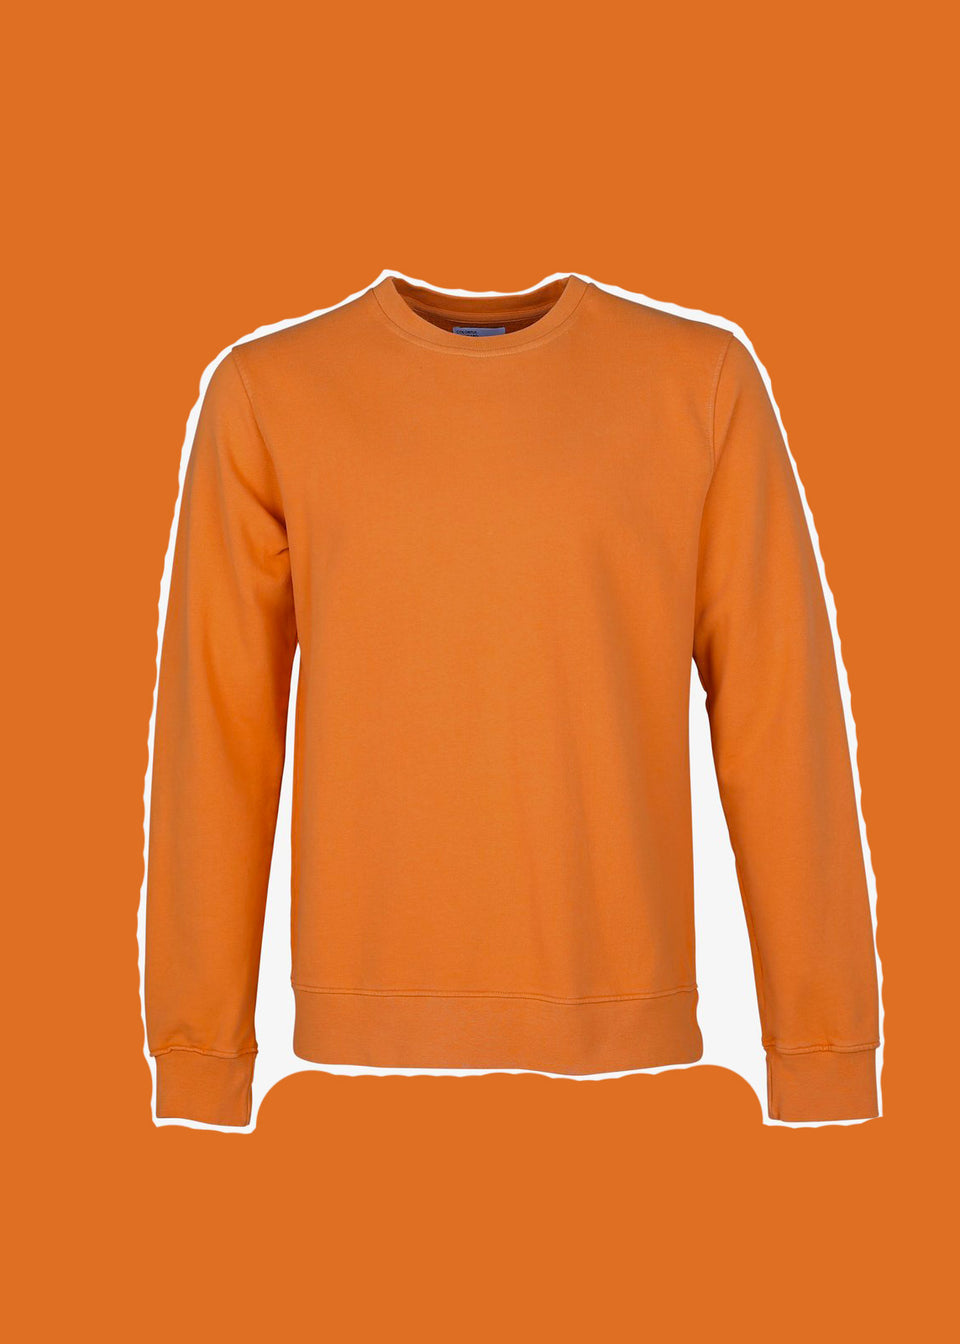 COLORFUL STANDARD • Sweat Crewneck Orange